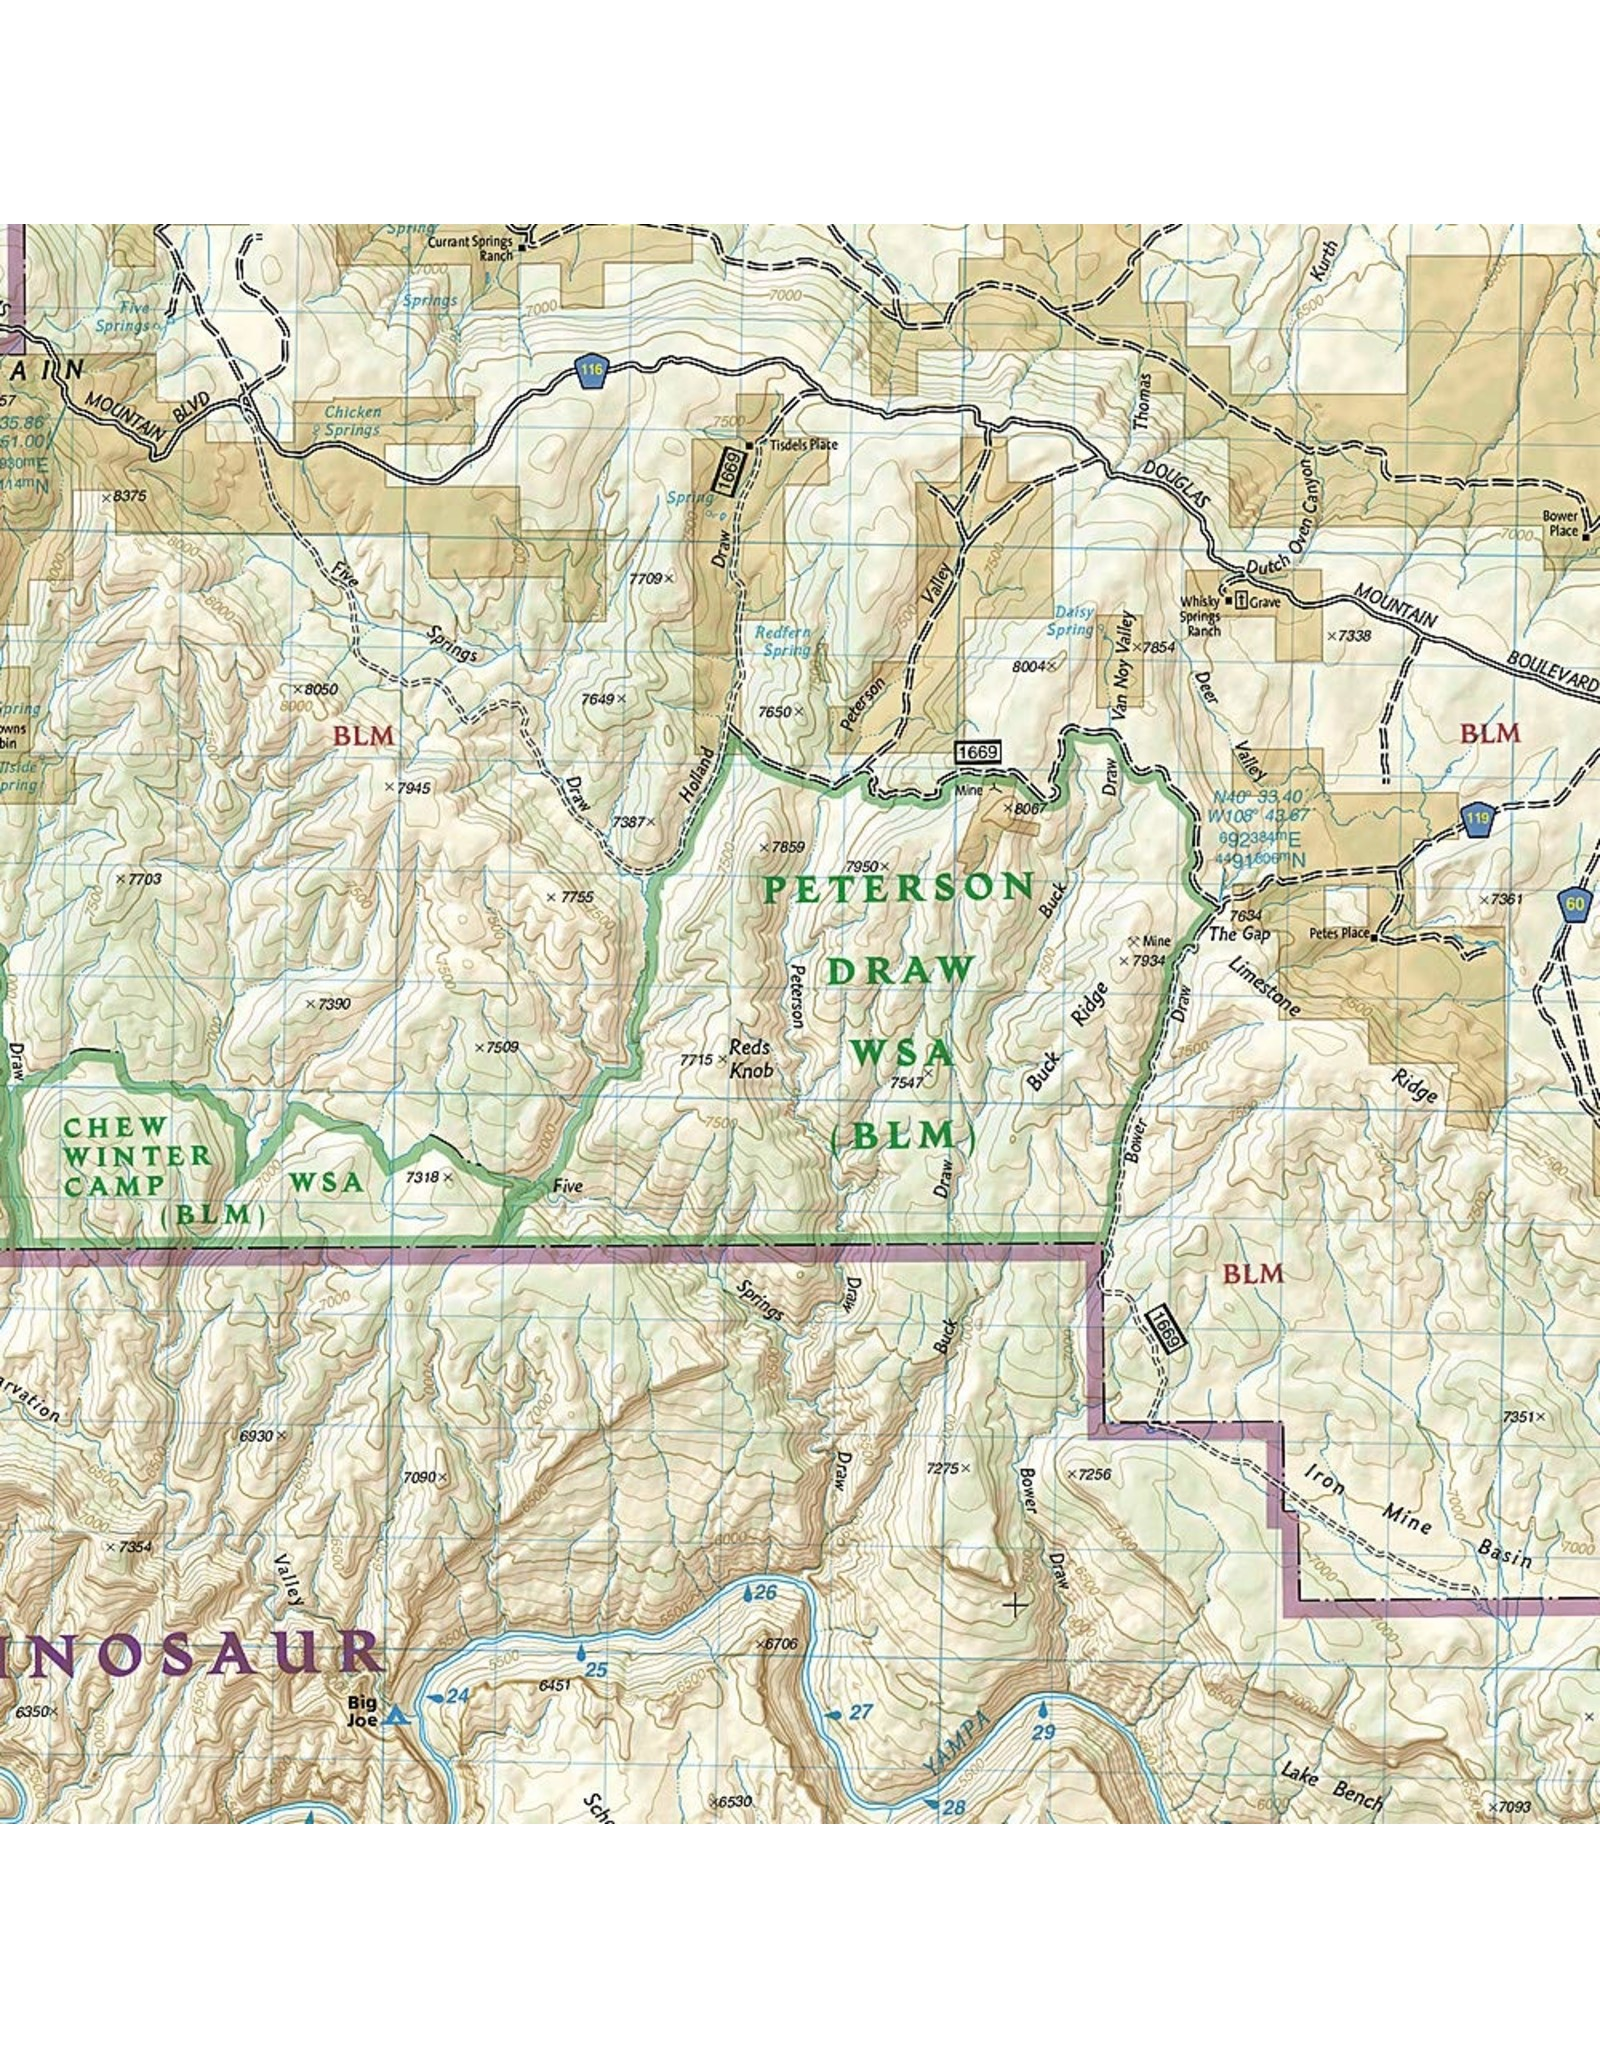 Dinosaur National Monument (National Geographic Trails Illustrated Map, 220) Map – Folded Map